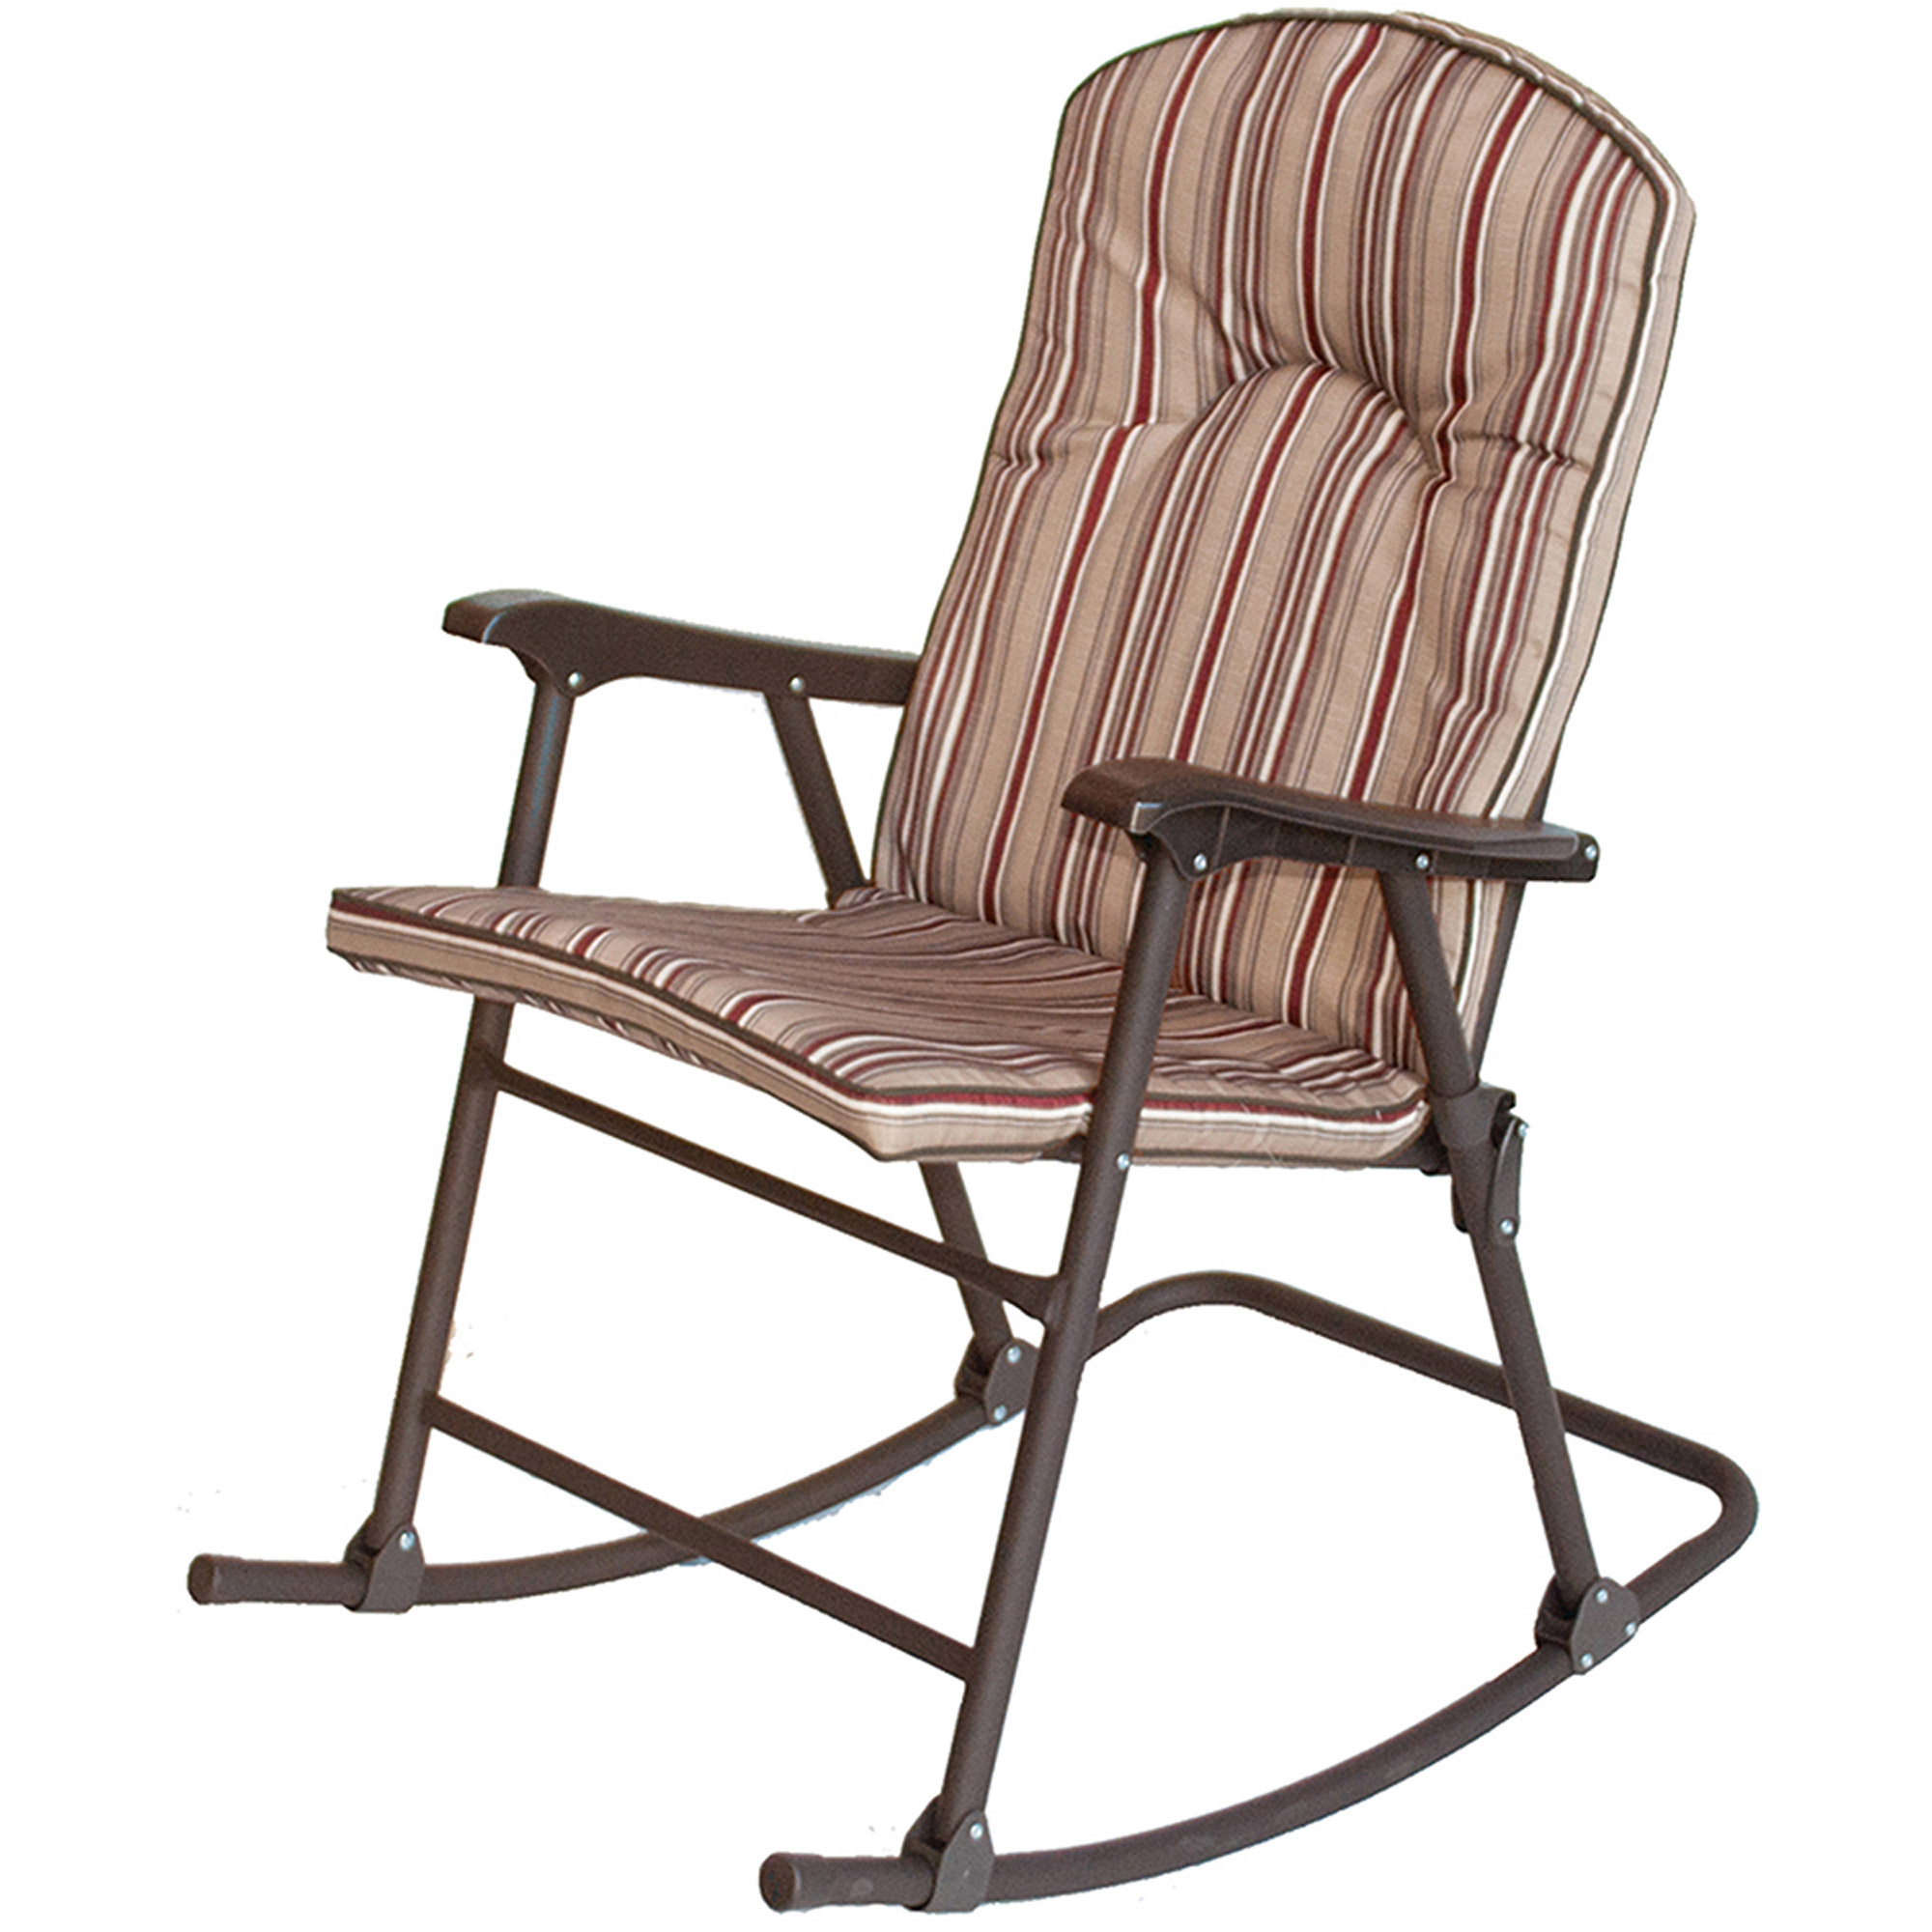 Prime Products Cambria Padded Rocker, Red Rock, 13 6803 For Padded Rocking Chairs (#15 of 20)